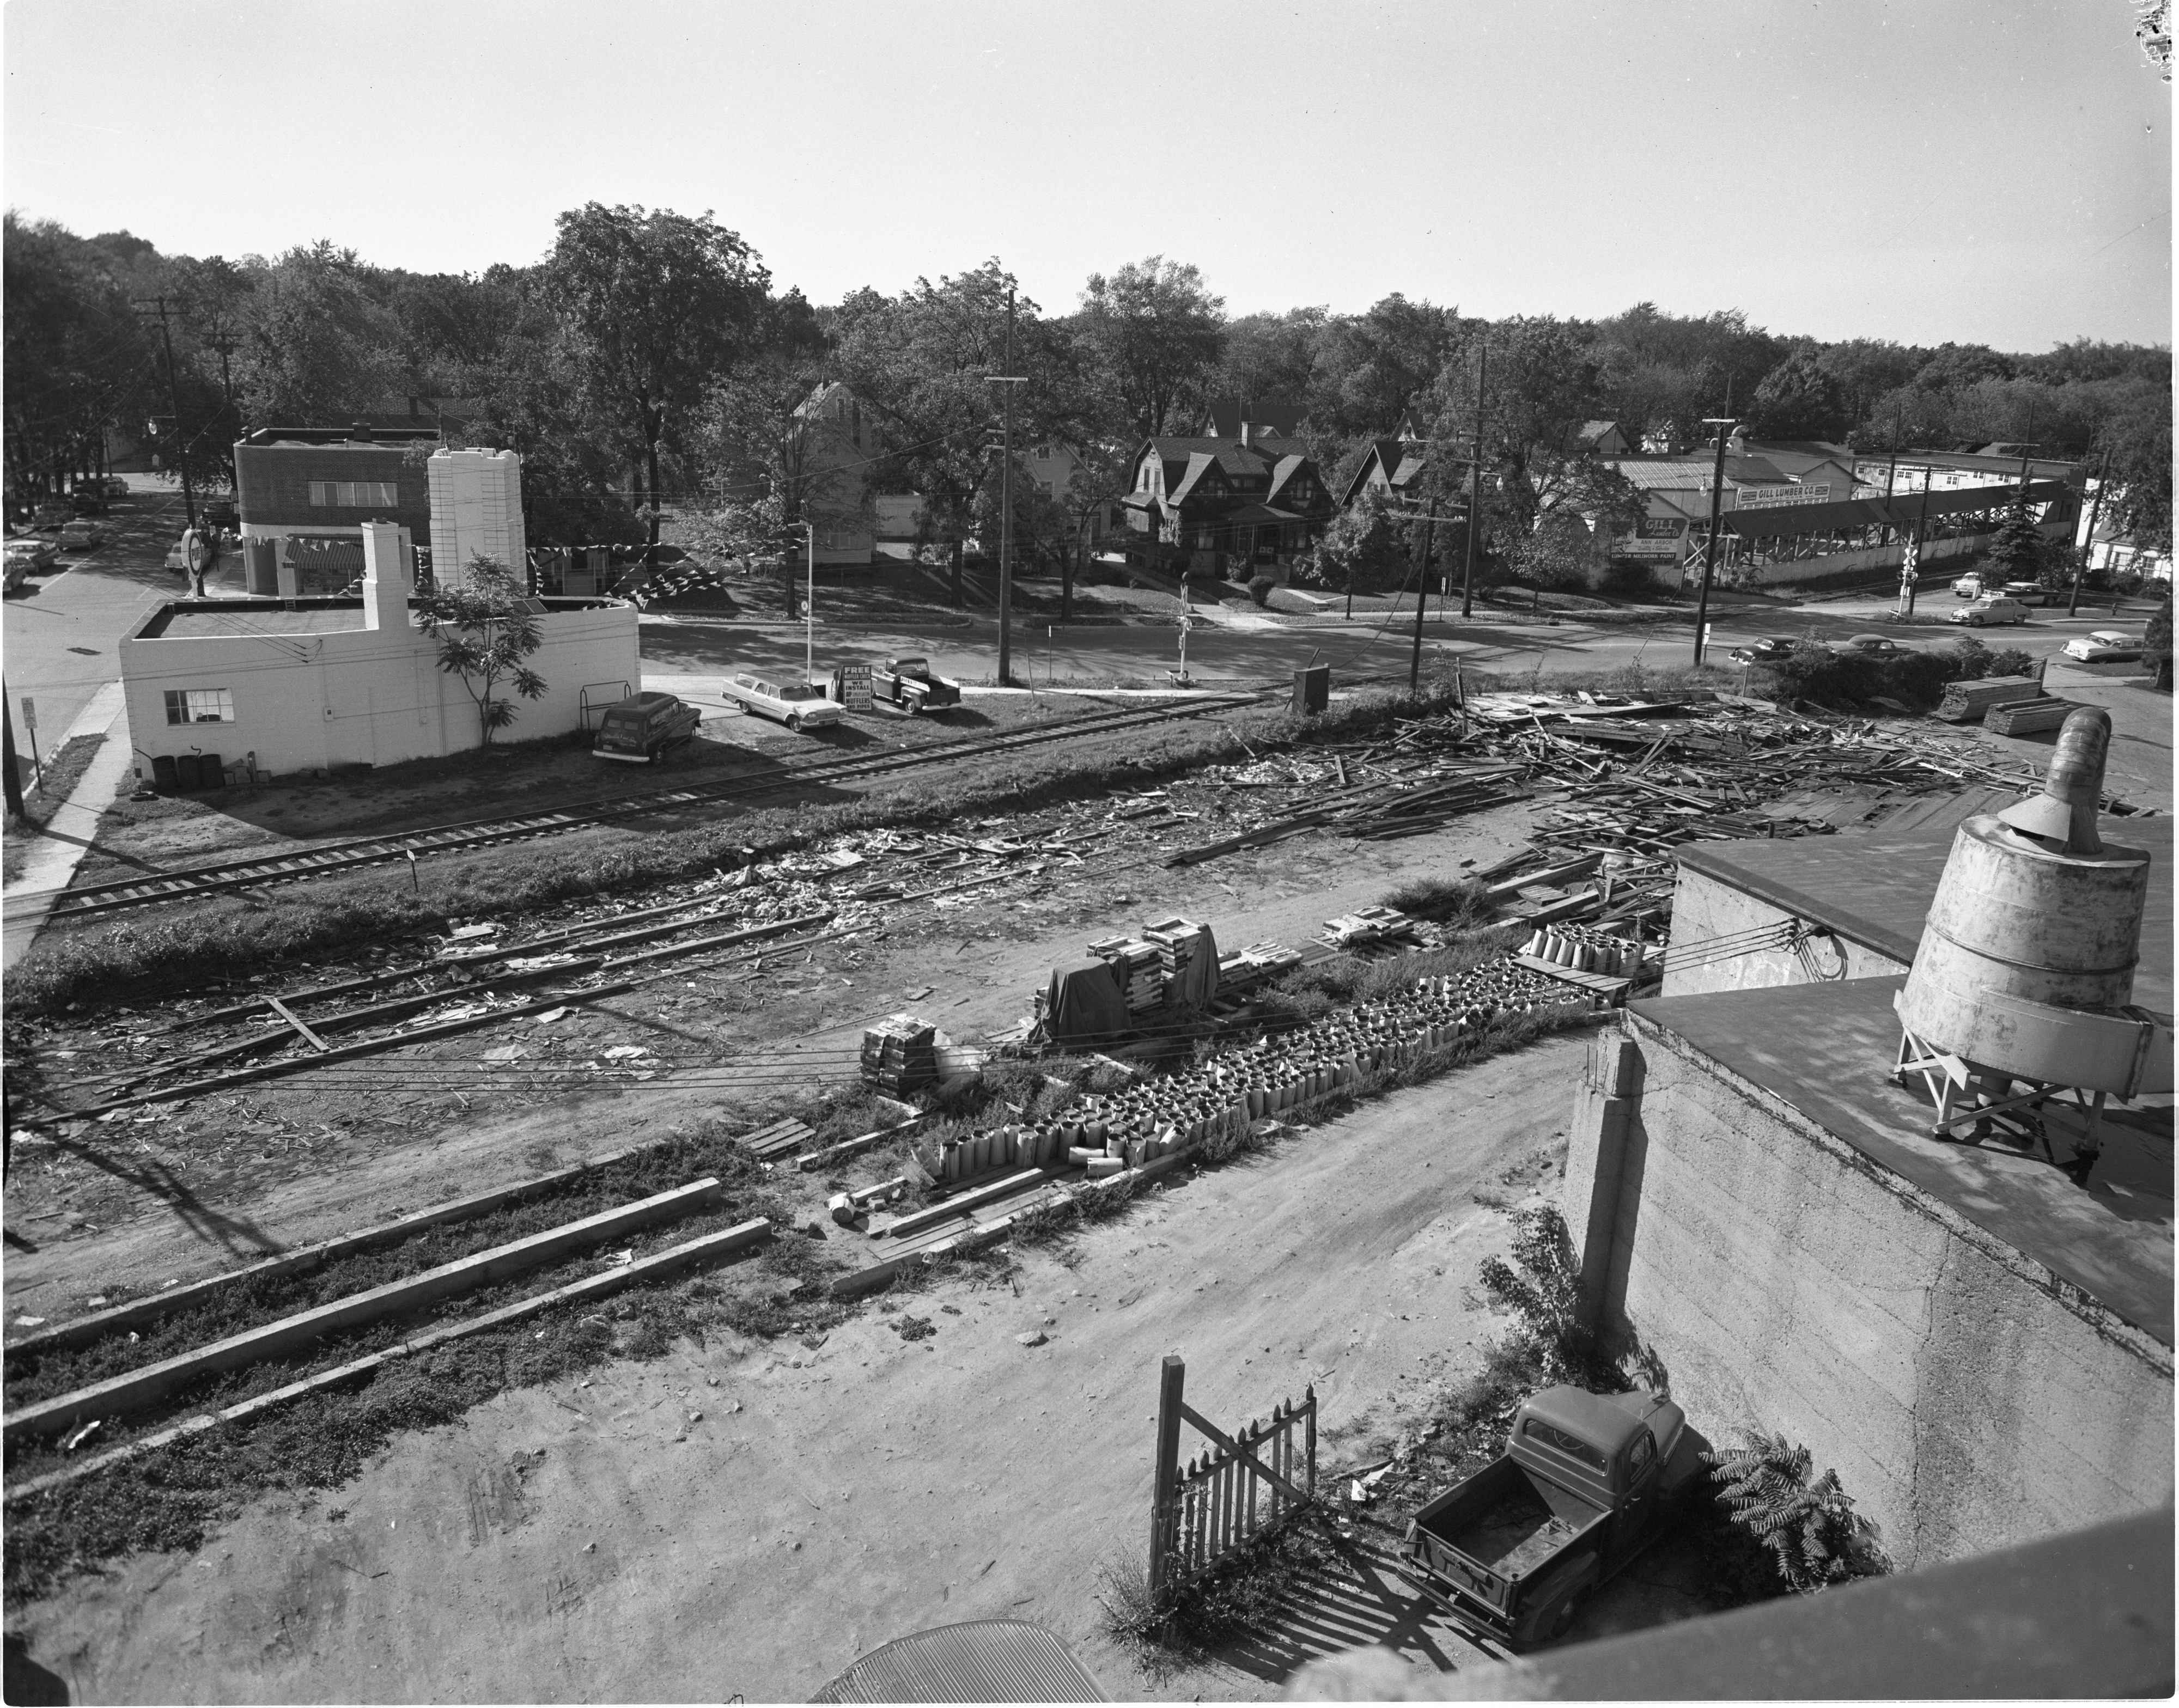 Old Lumber Facilities Along Railroad Tracks Demolished - Main / Madison Intersection, October 1958 image